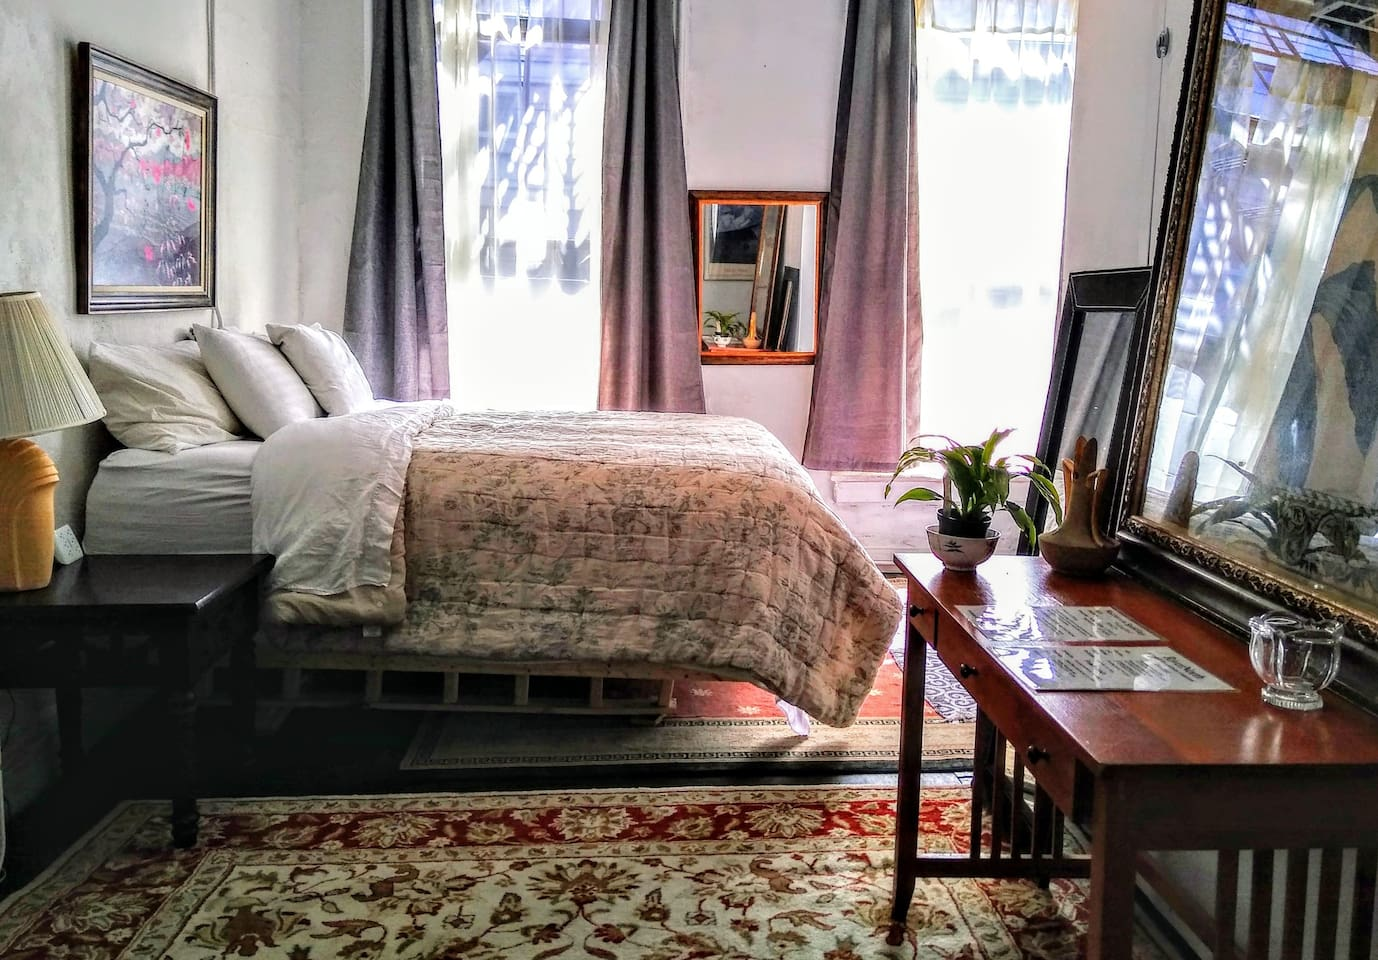 We have wonderful King beds adorned with fine Italian and Portuguese linens 5 different pillows and warm and comfy duvets. We're bed snobs. We bring in a full twin bed when needed.